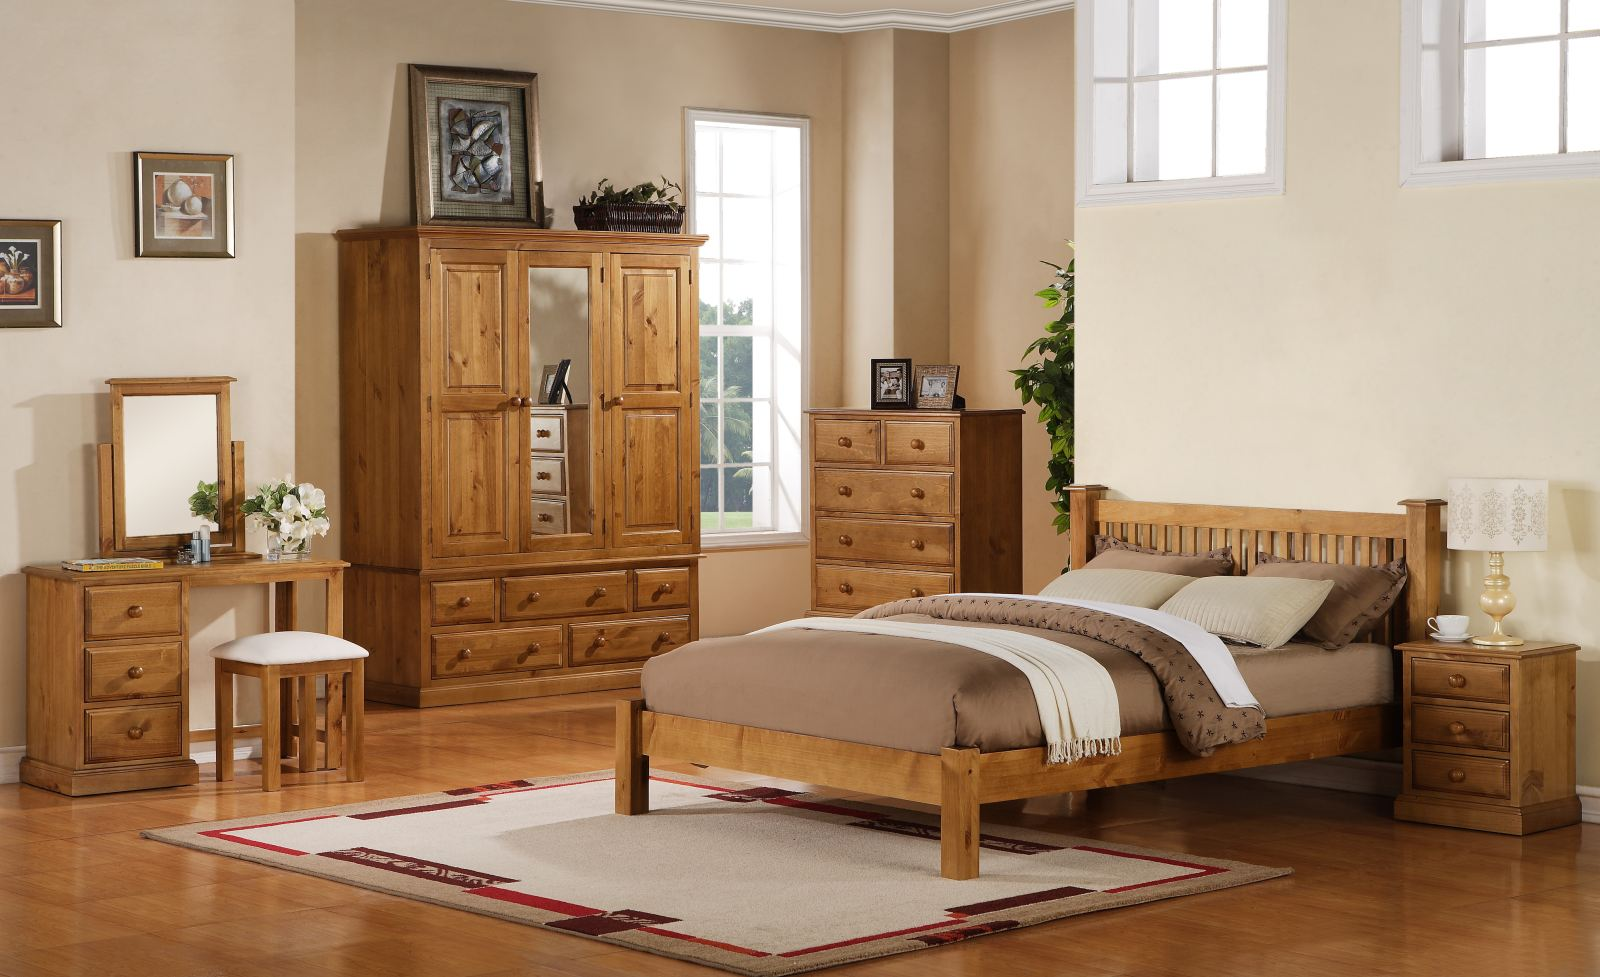 Pine bedroom furniture shopping tips for Pine furniture